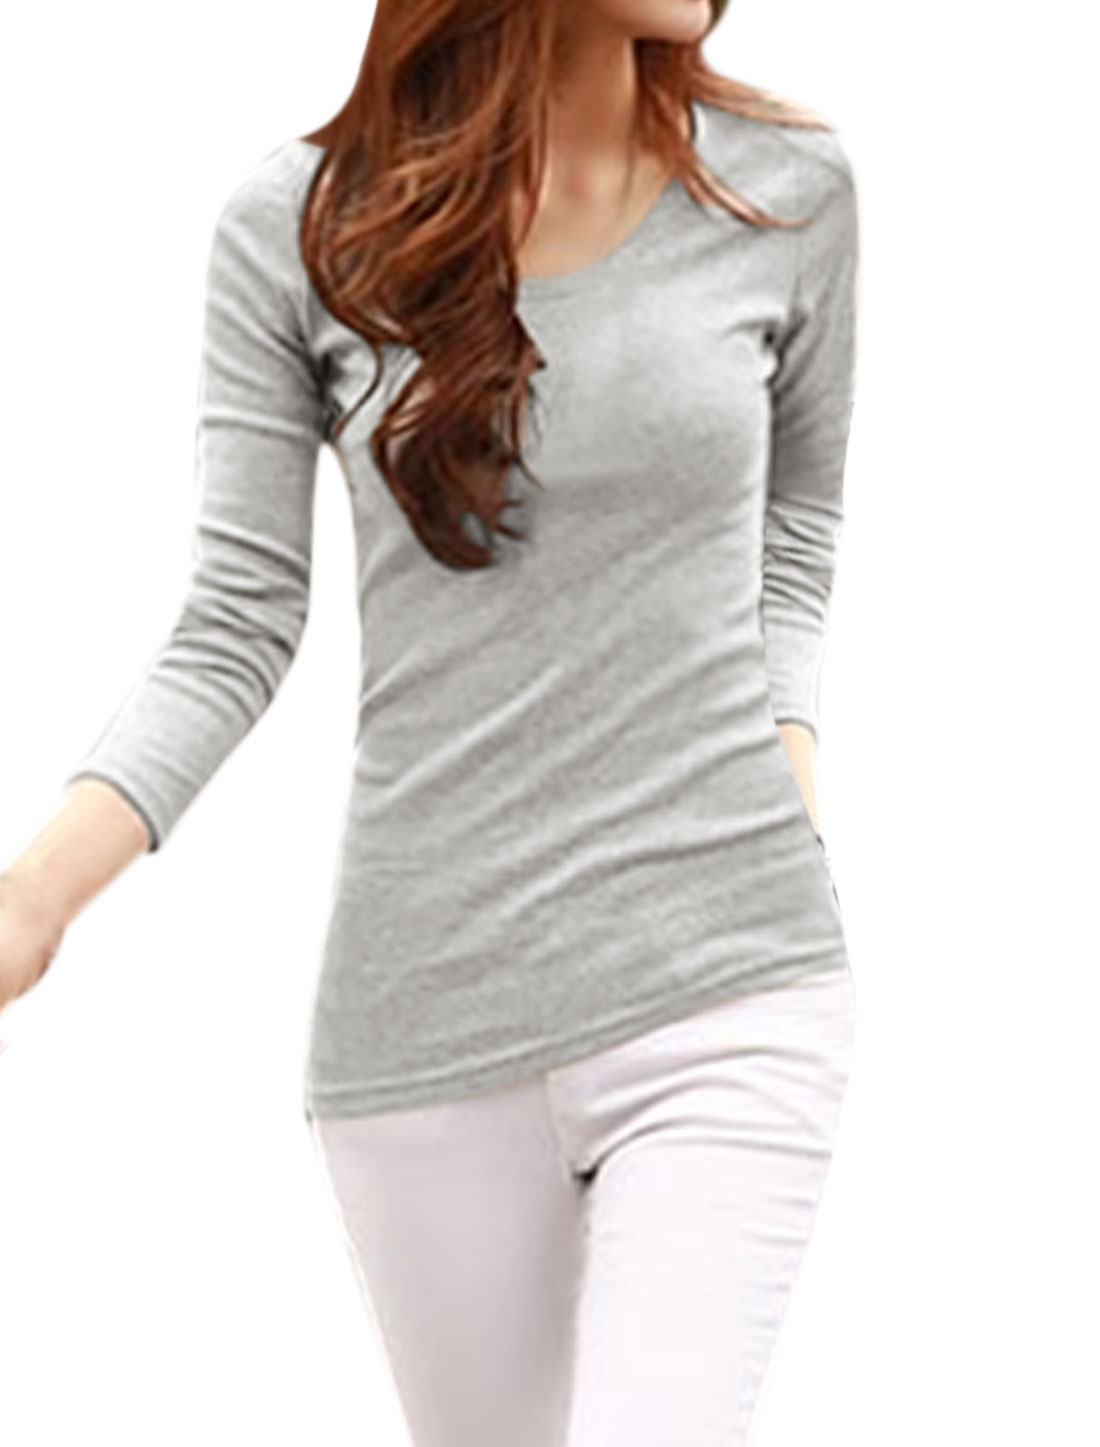 Women Long Sleeves Asymmetric Hem Slim Fit Tee Shirt Gray M